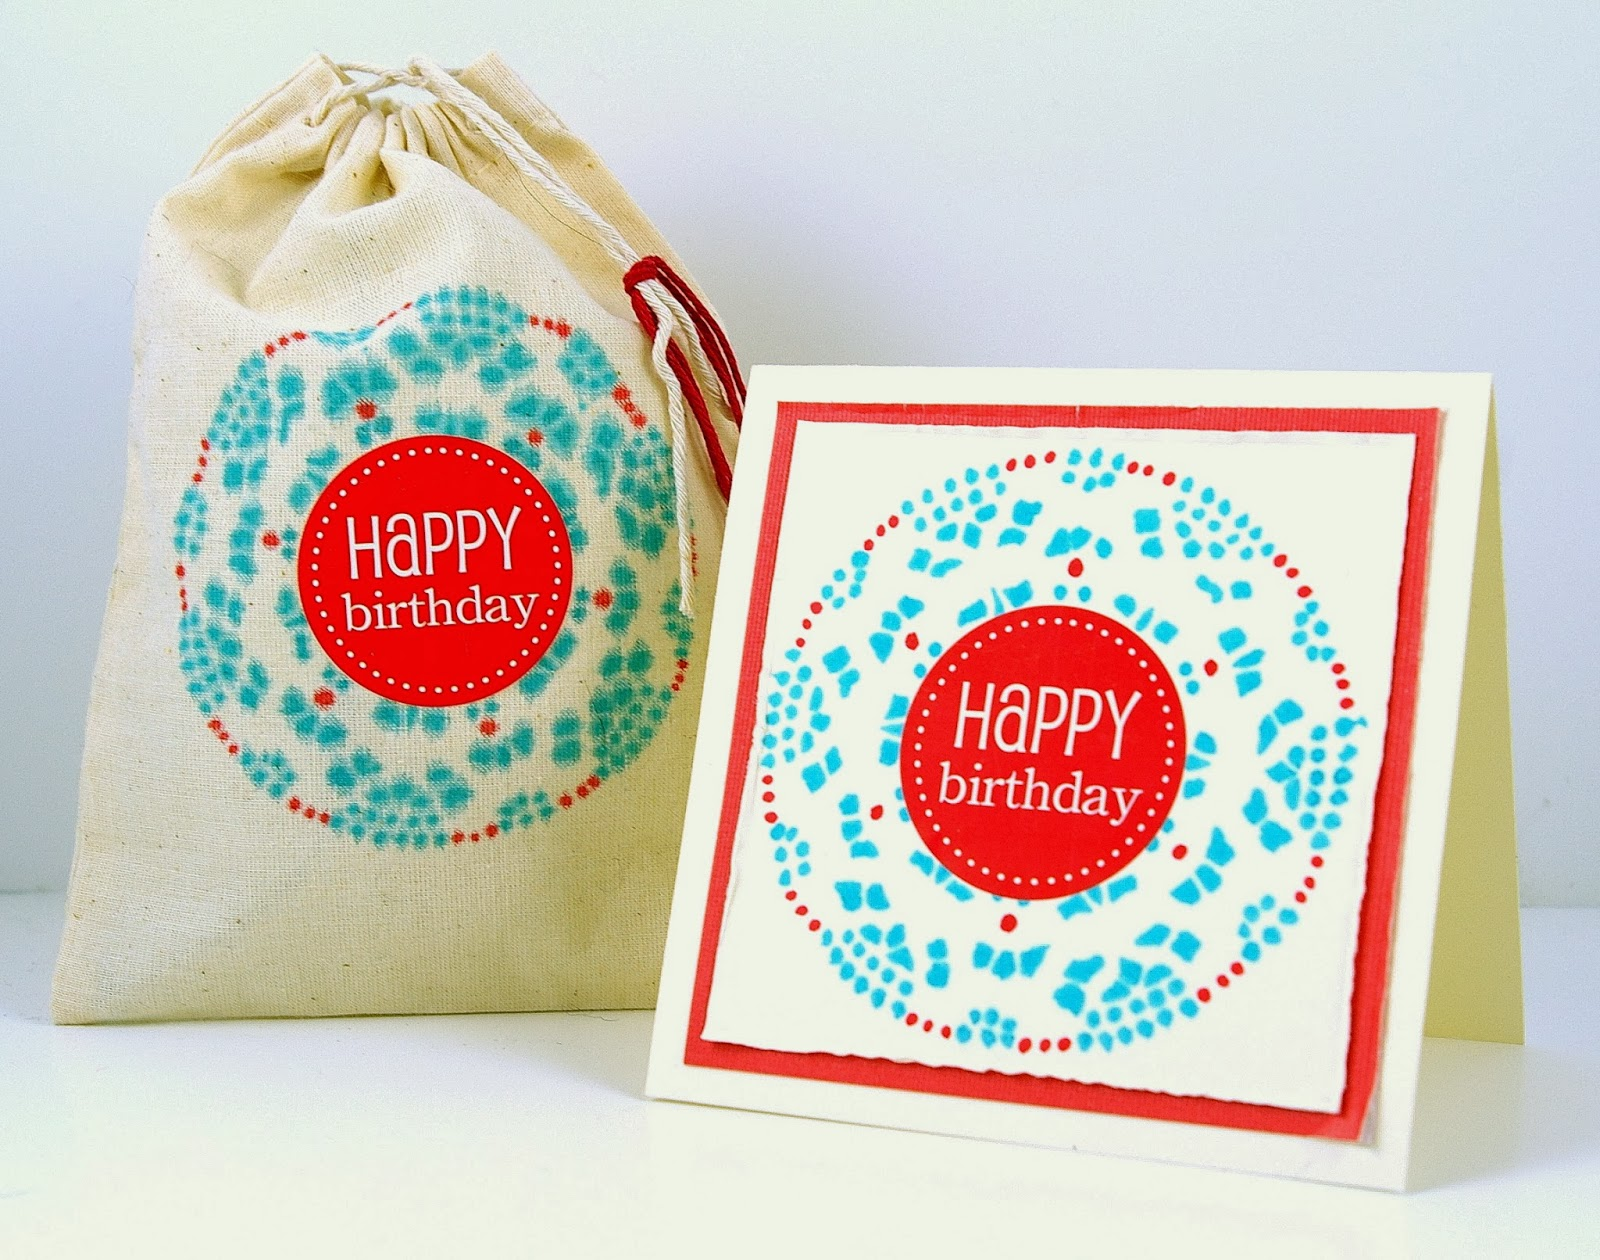 SRM Stickers Blog - Doily Stenciled Birthday Bag by Michelle - #birthday #card #doilies #gift #bag #muslin #twine #gift #stencil